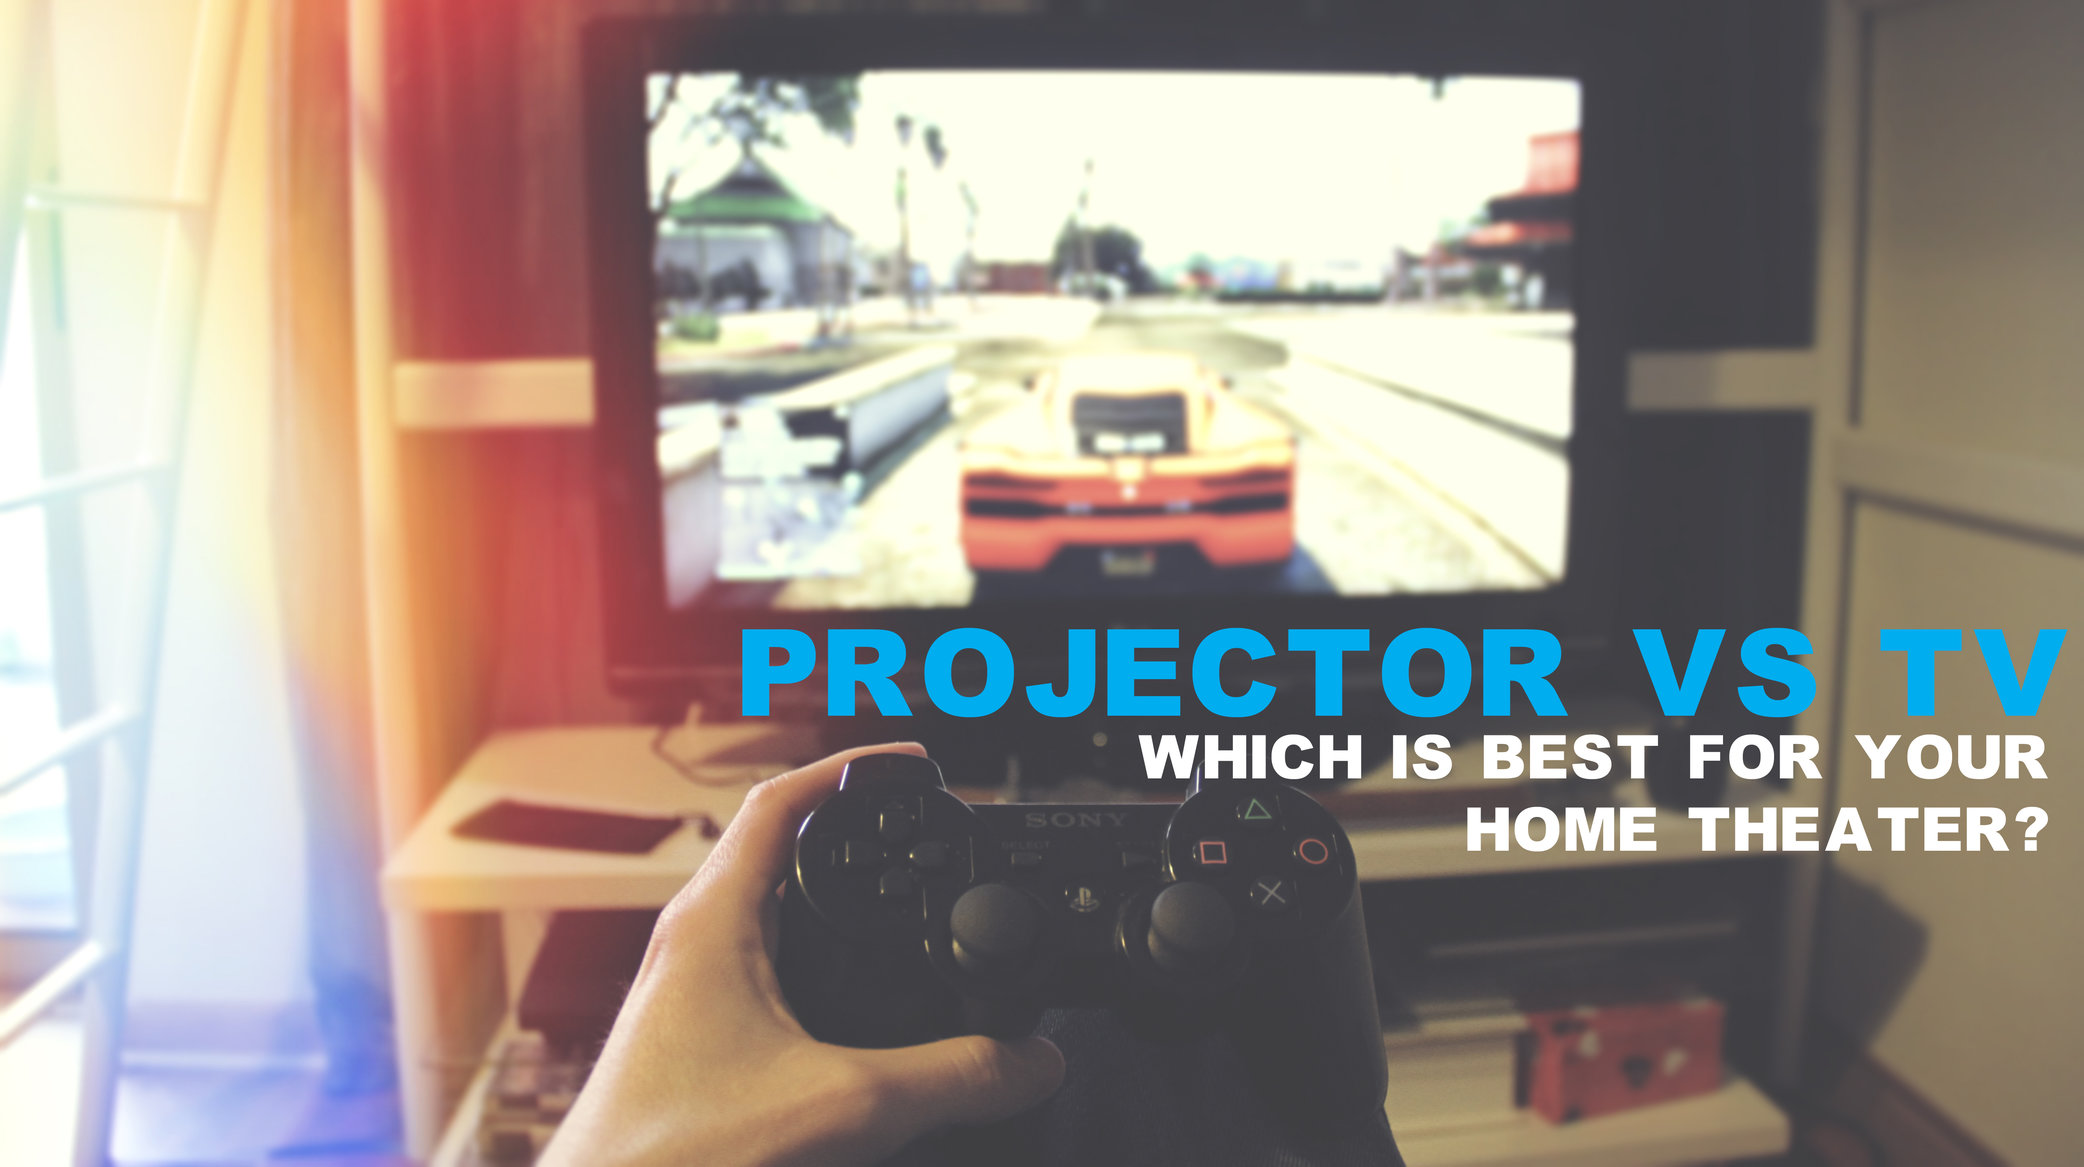 Comparing Digital Projector to HDTV for your Home Theater